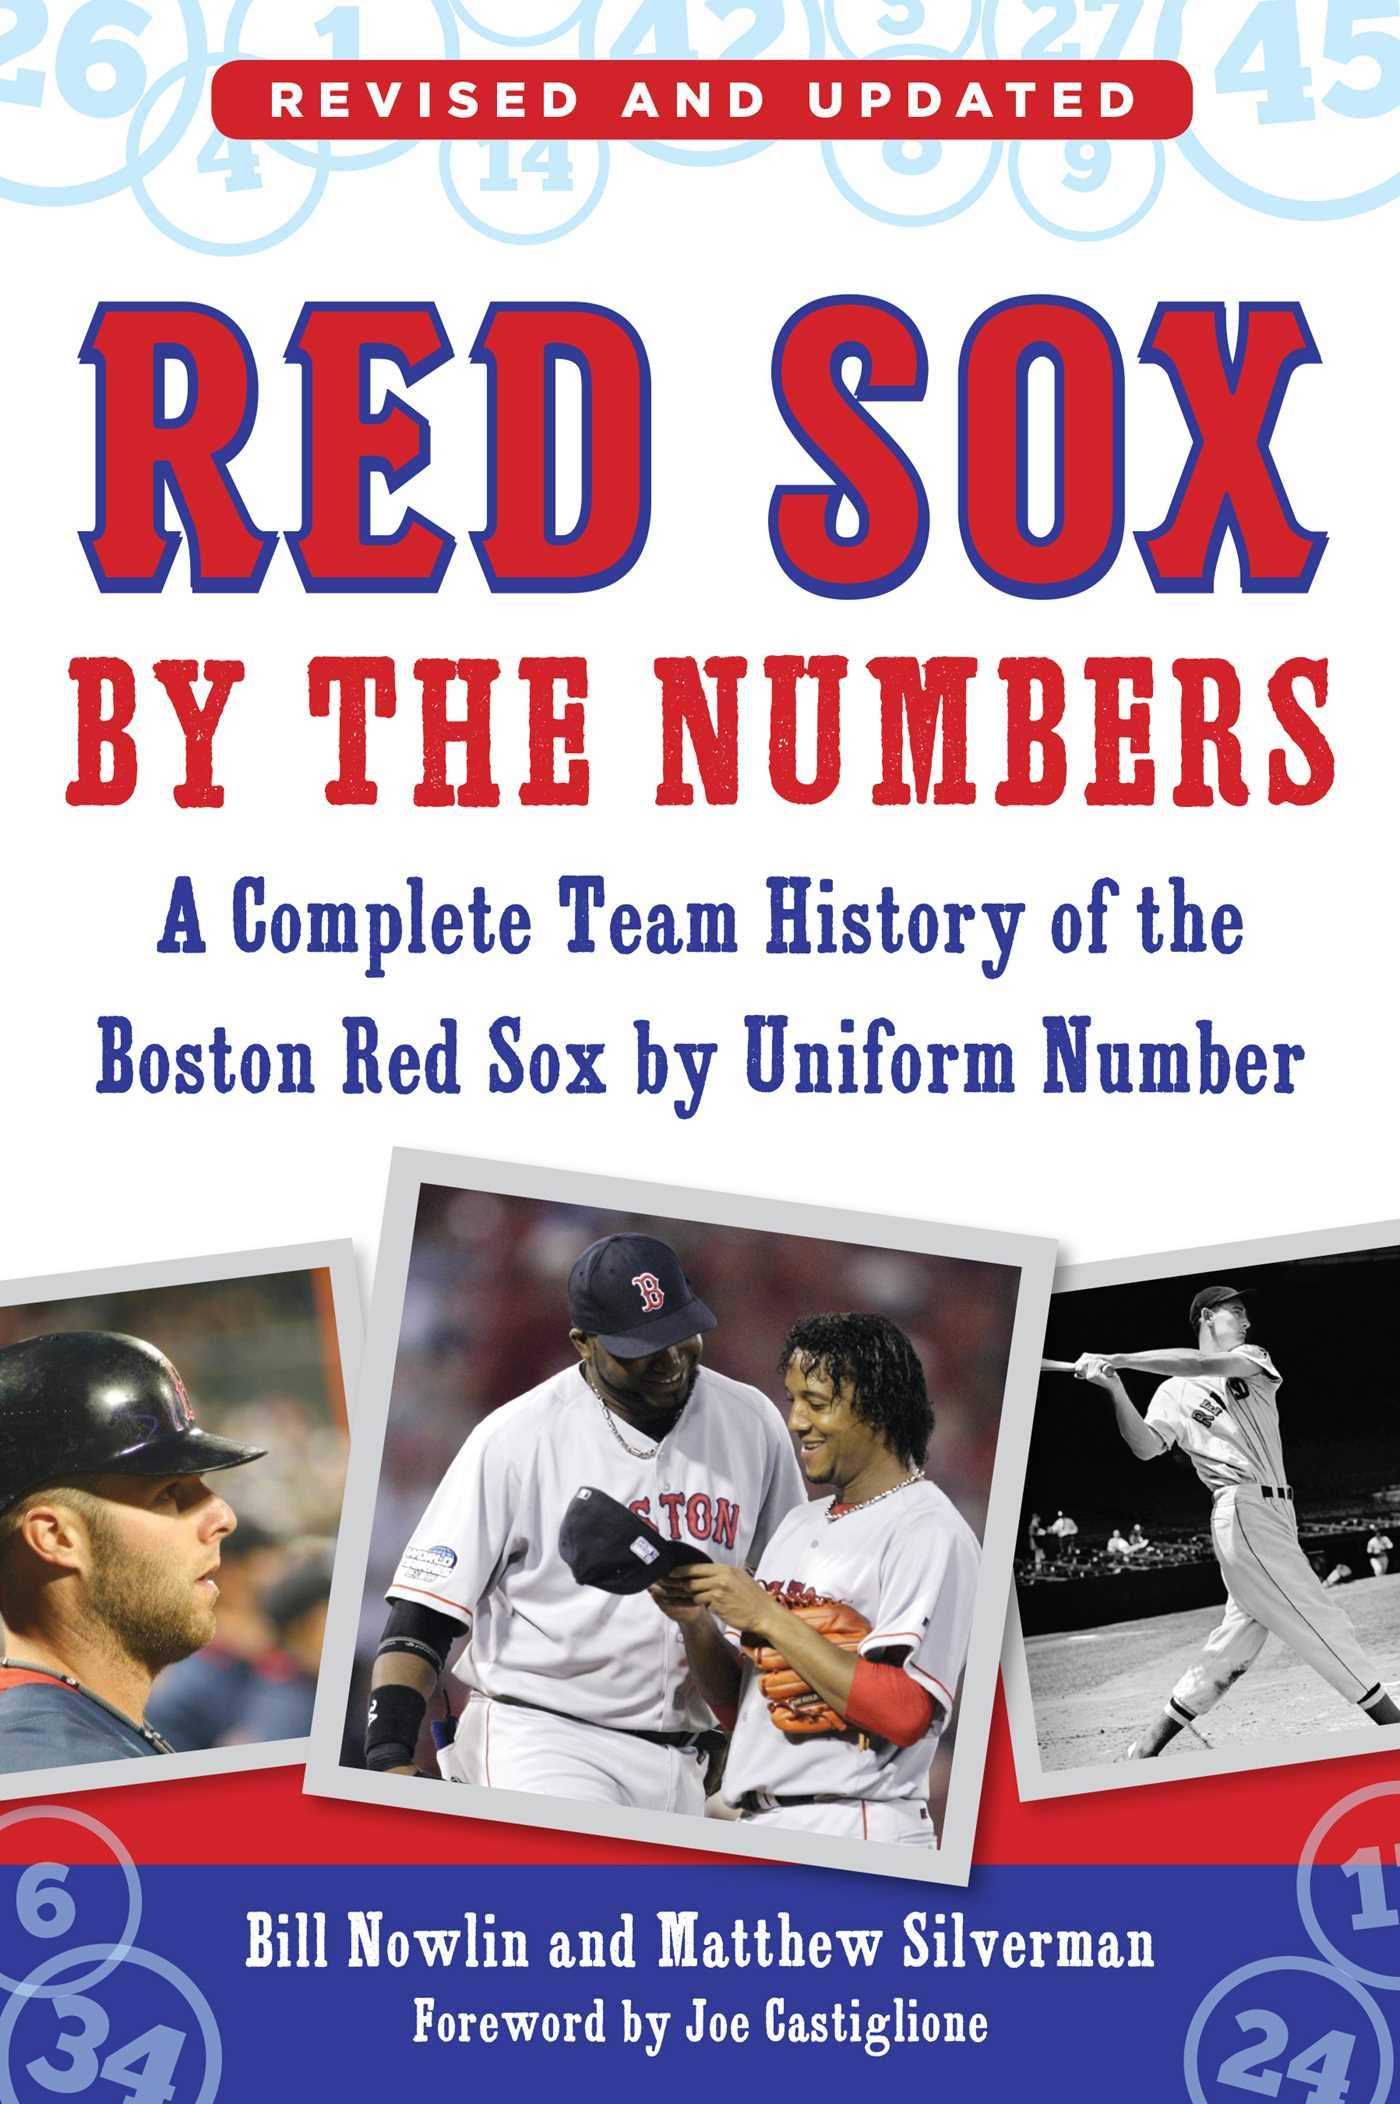 Red Sox by the Numbers A Complete Team History of the Boston Red Sox by Uniform Number